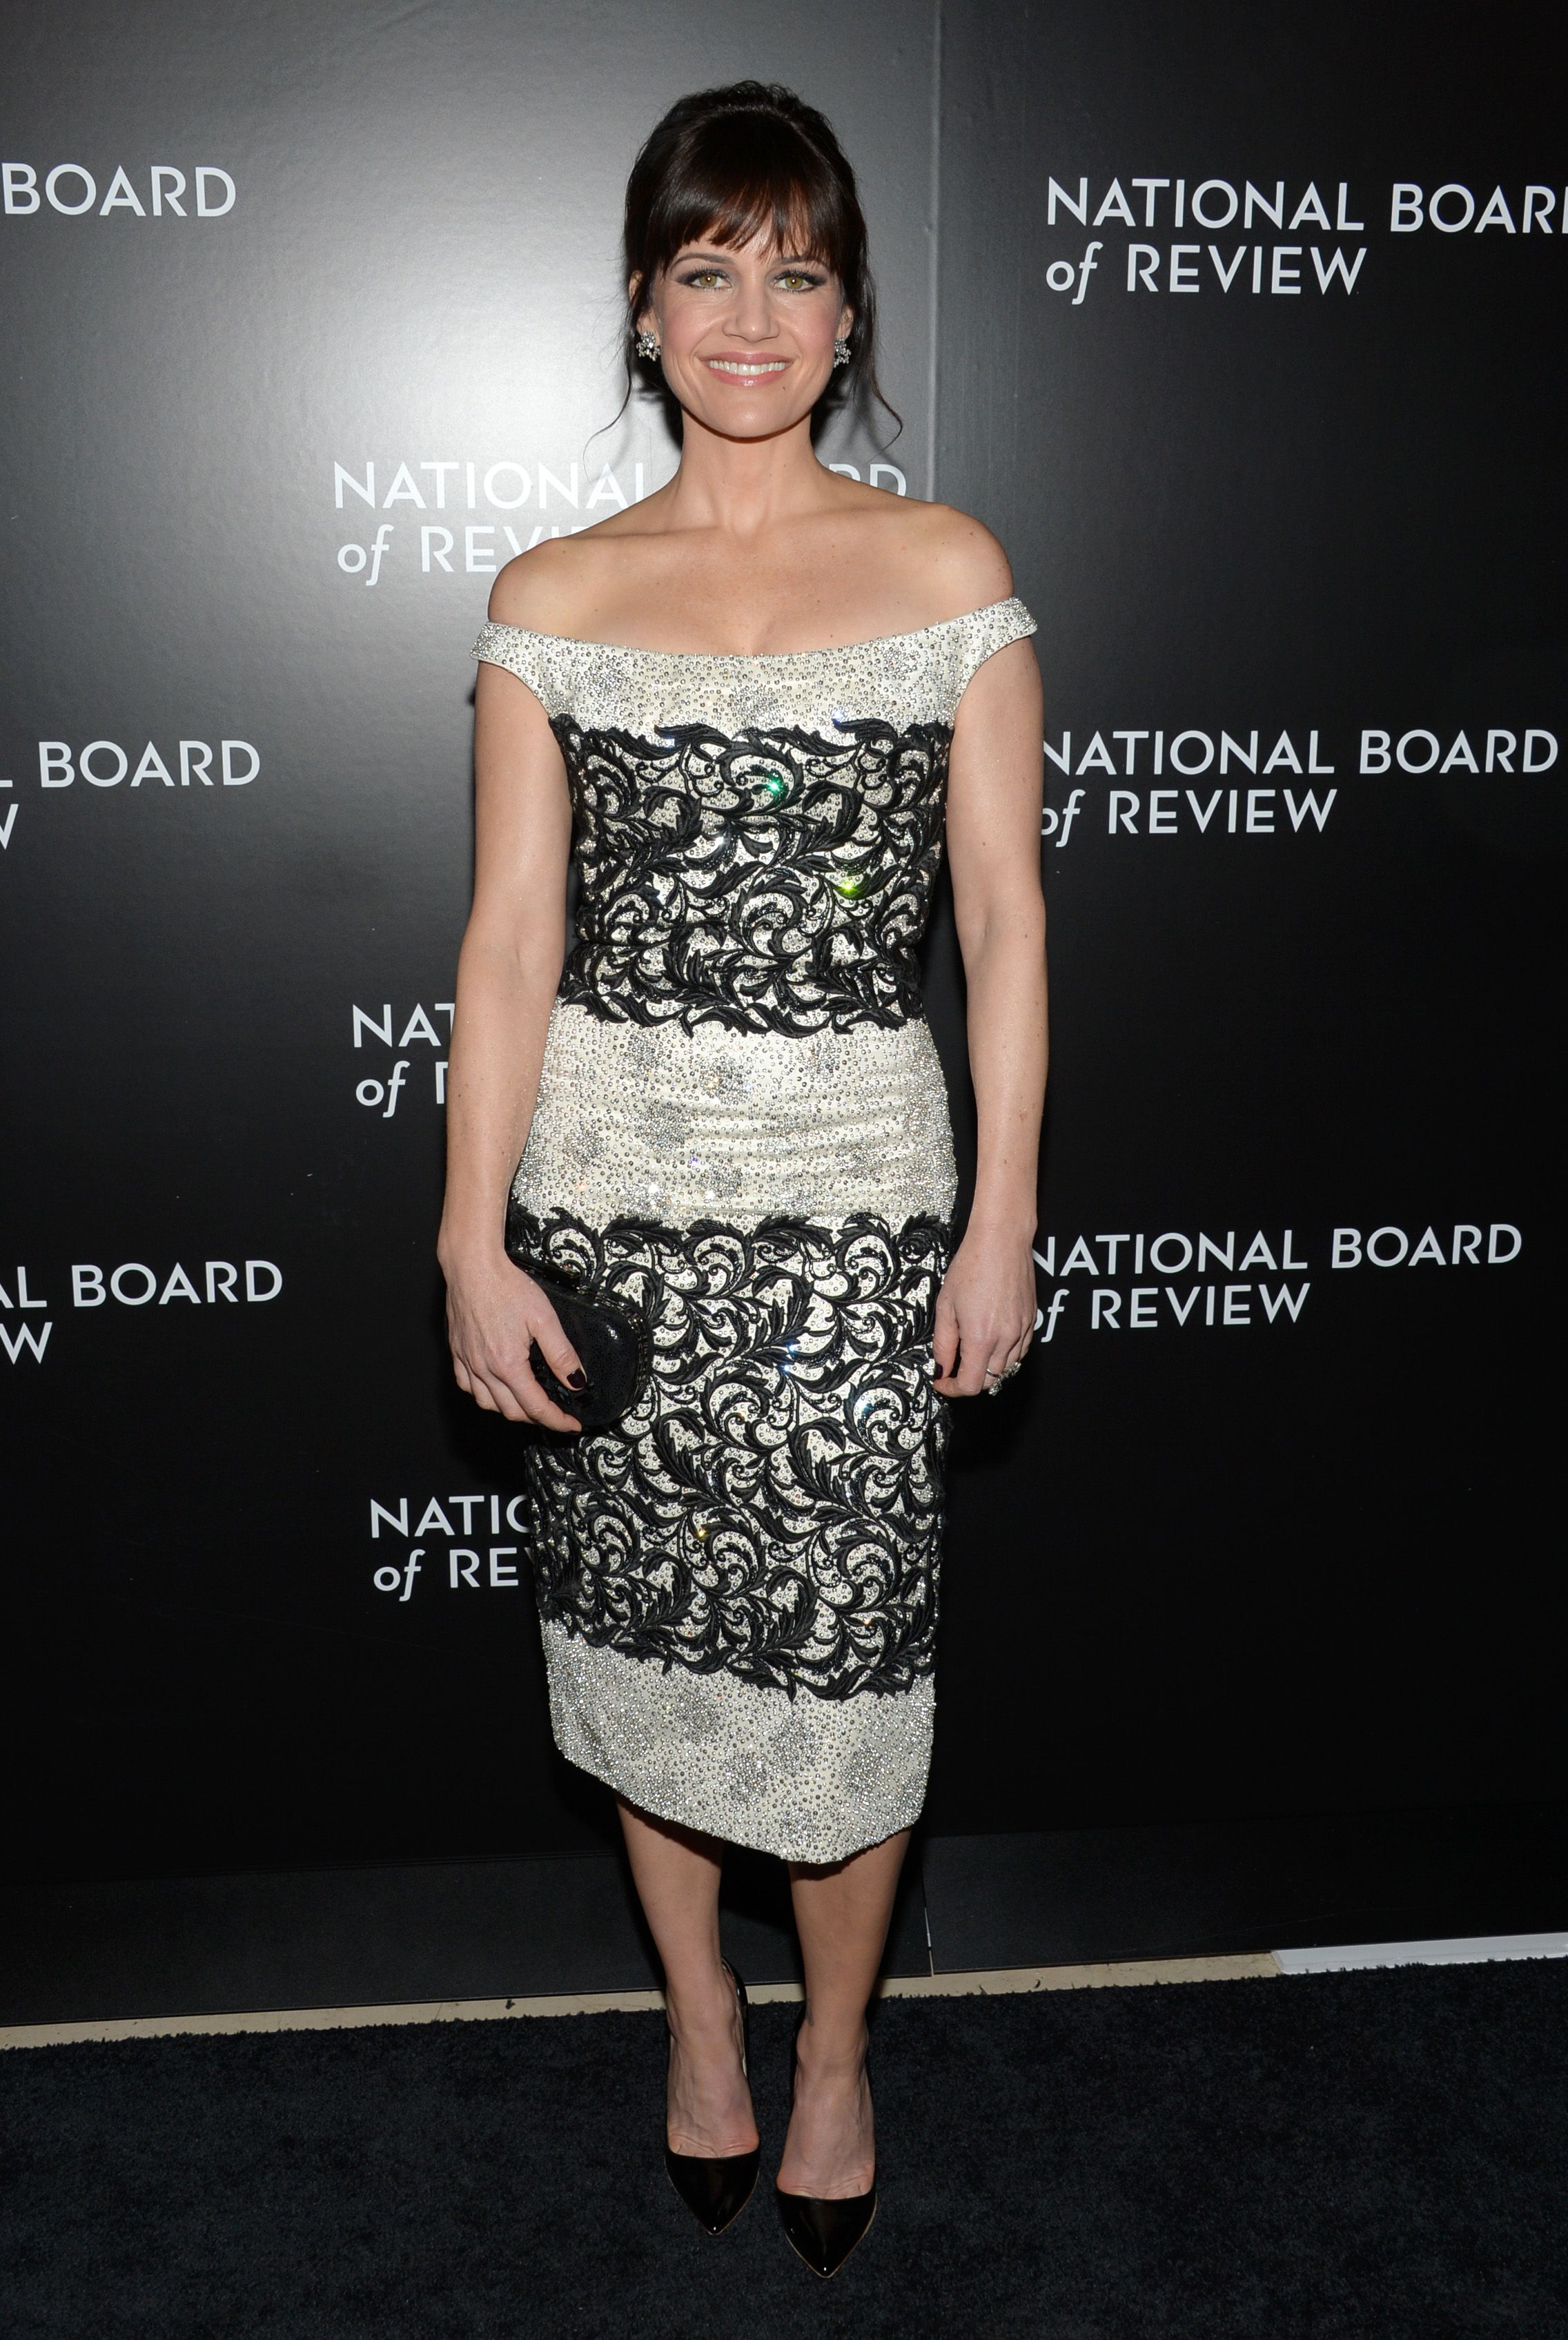 carla gugino at the 2015 national board of review luncheon in new york